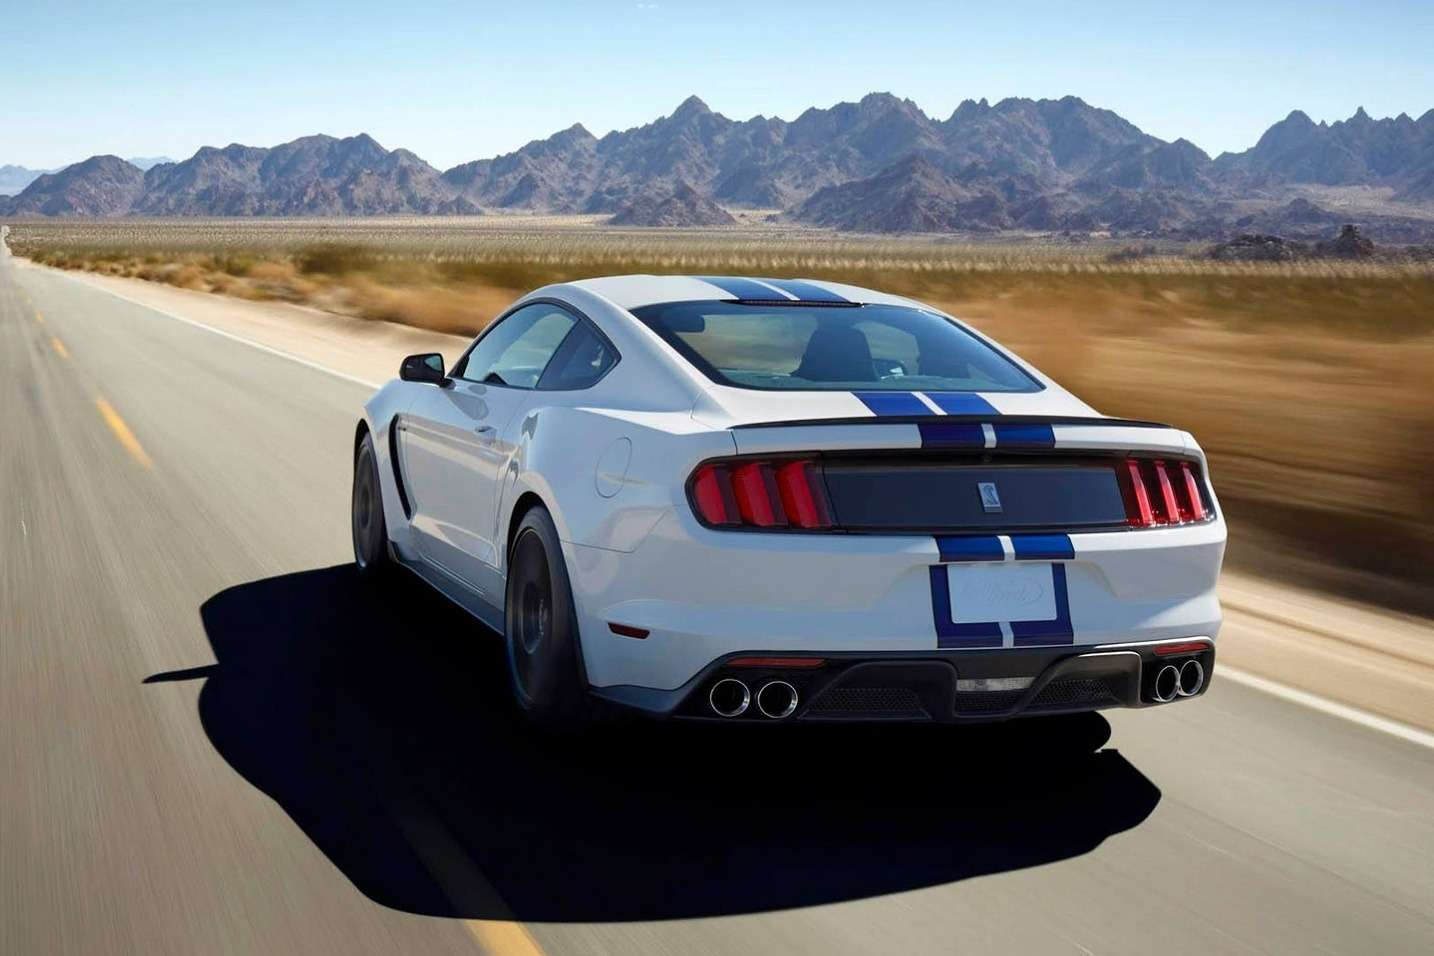 New-Ford-Mustang-Shelby-GT350-12